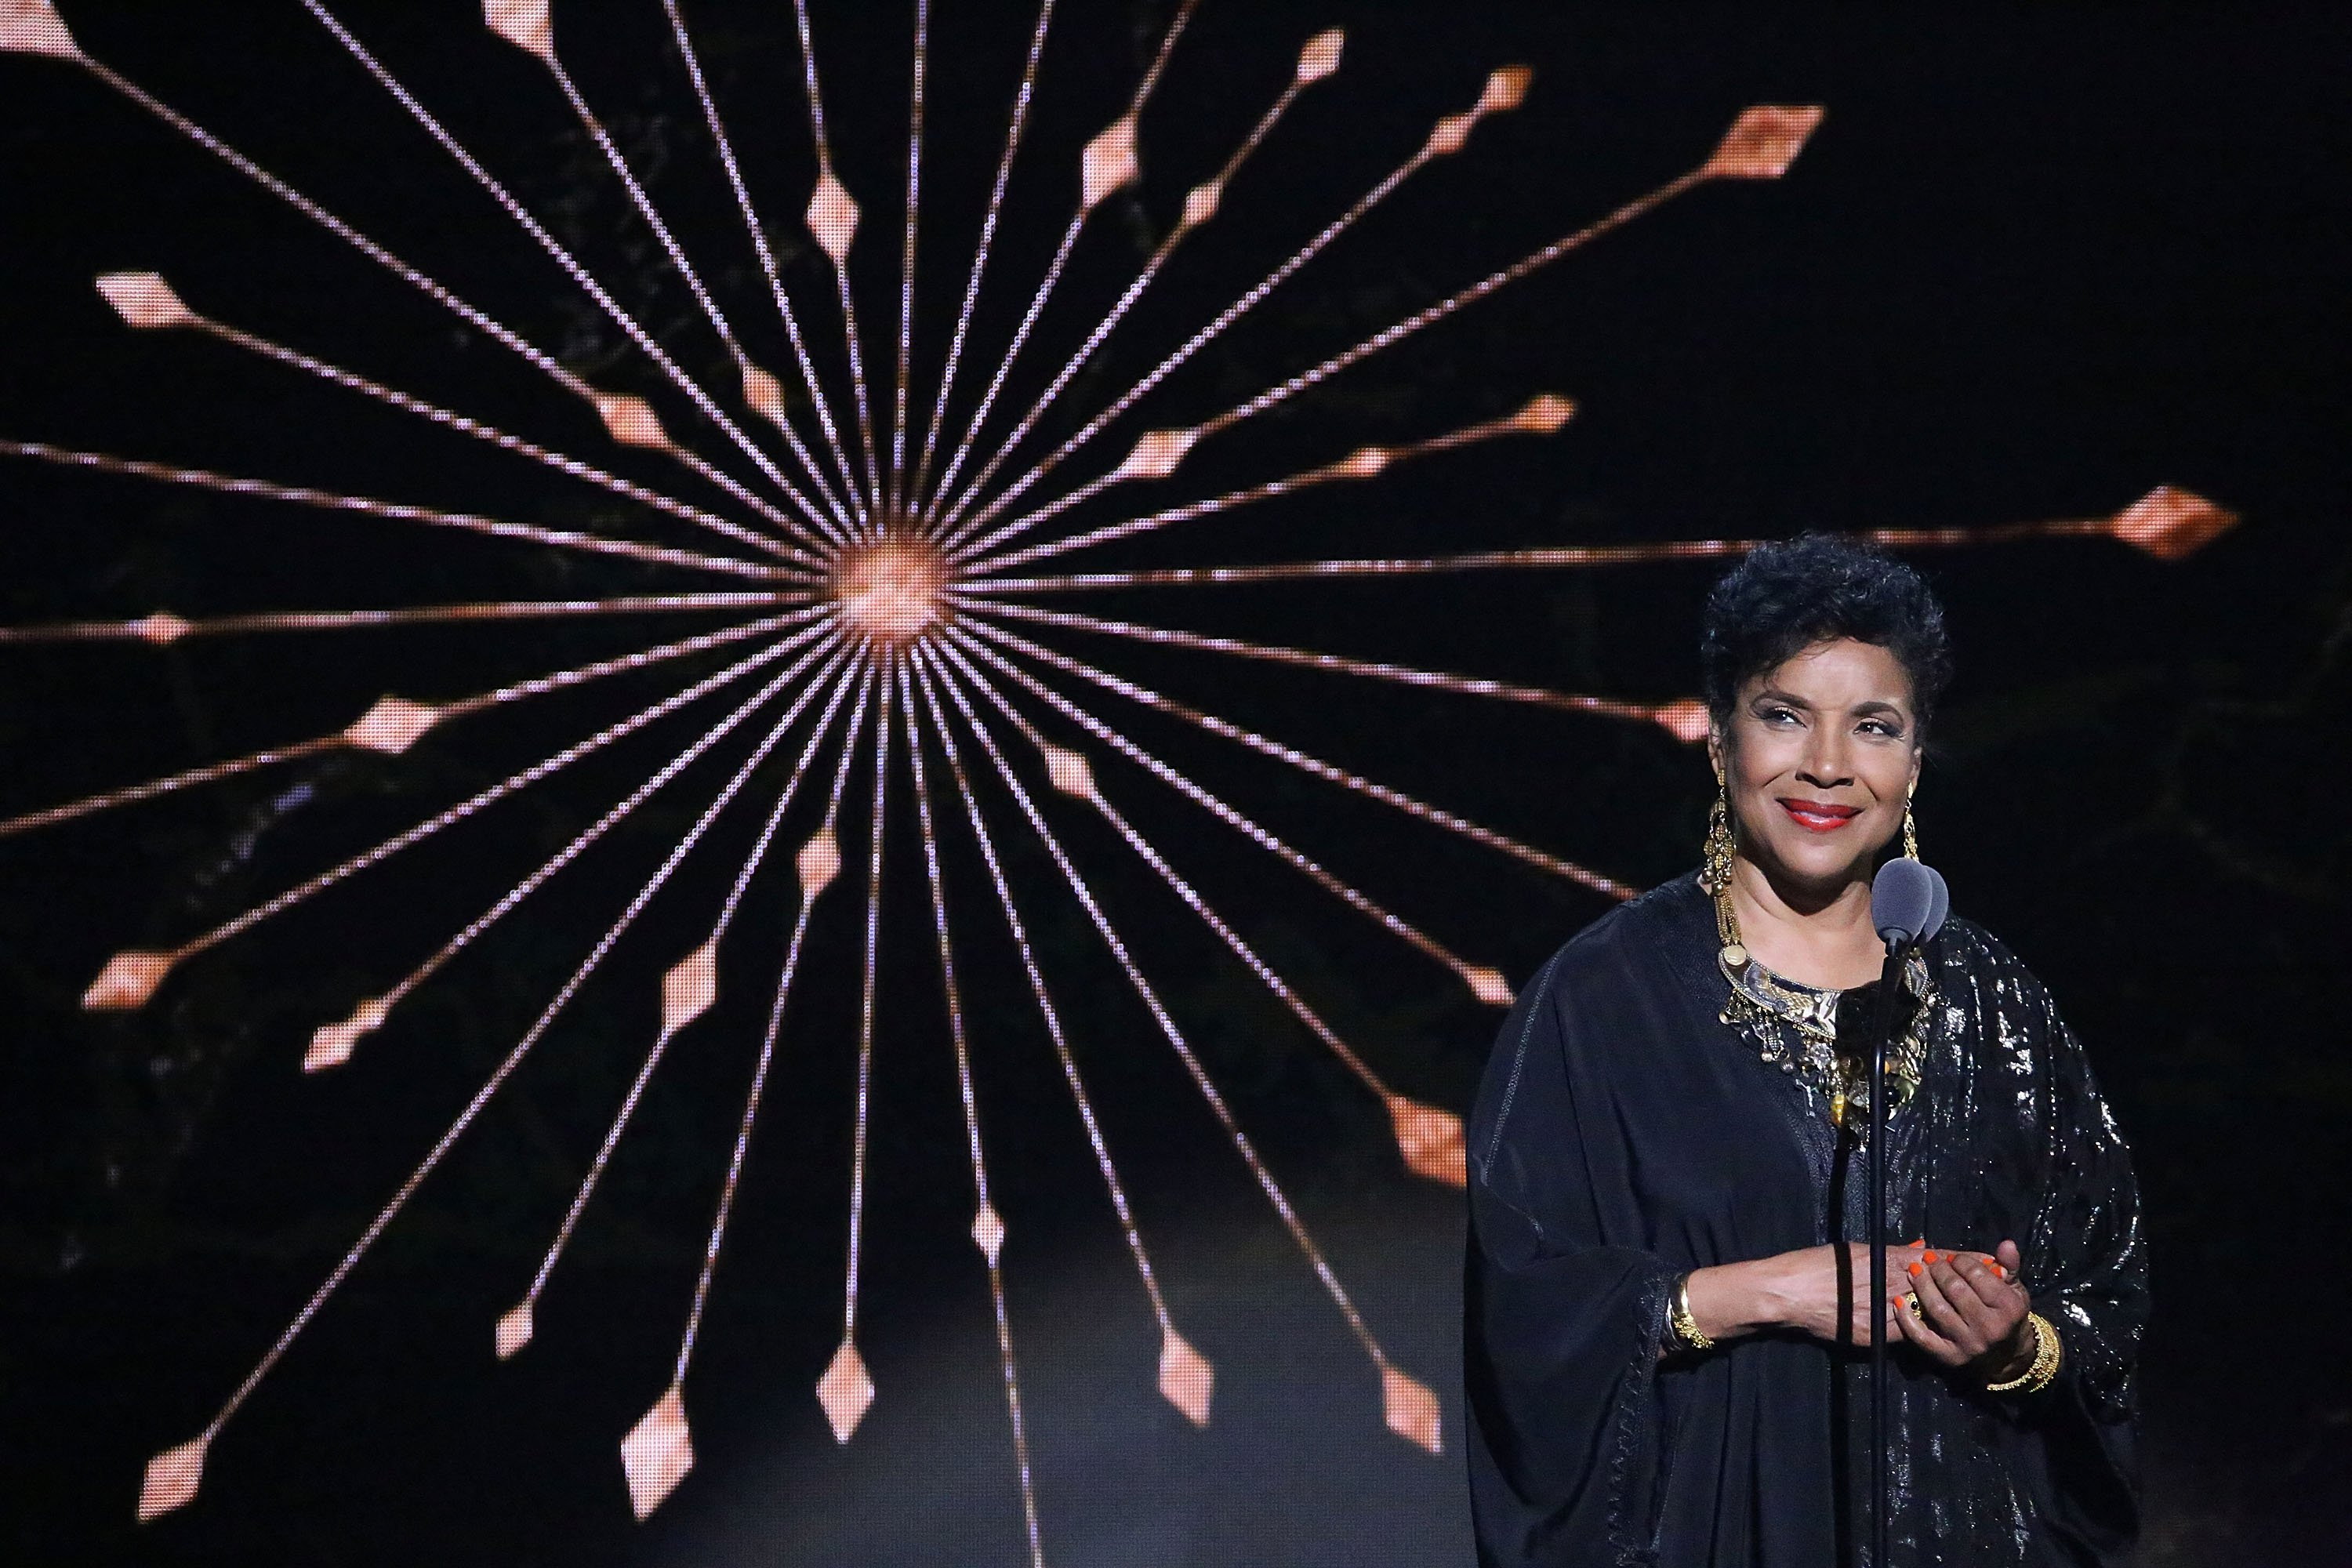 Phylicia Rashad onstage during the Black Girls Rock! 2018 show at New Jersey Performing Arts Center on August 26, 2018 in Newark, New Jersey | Photo: GettyImages